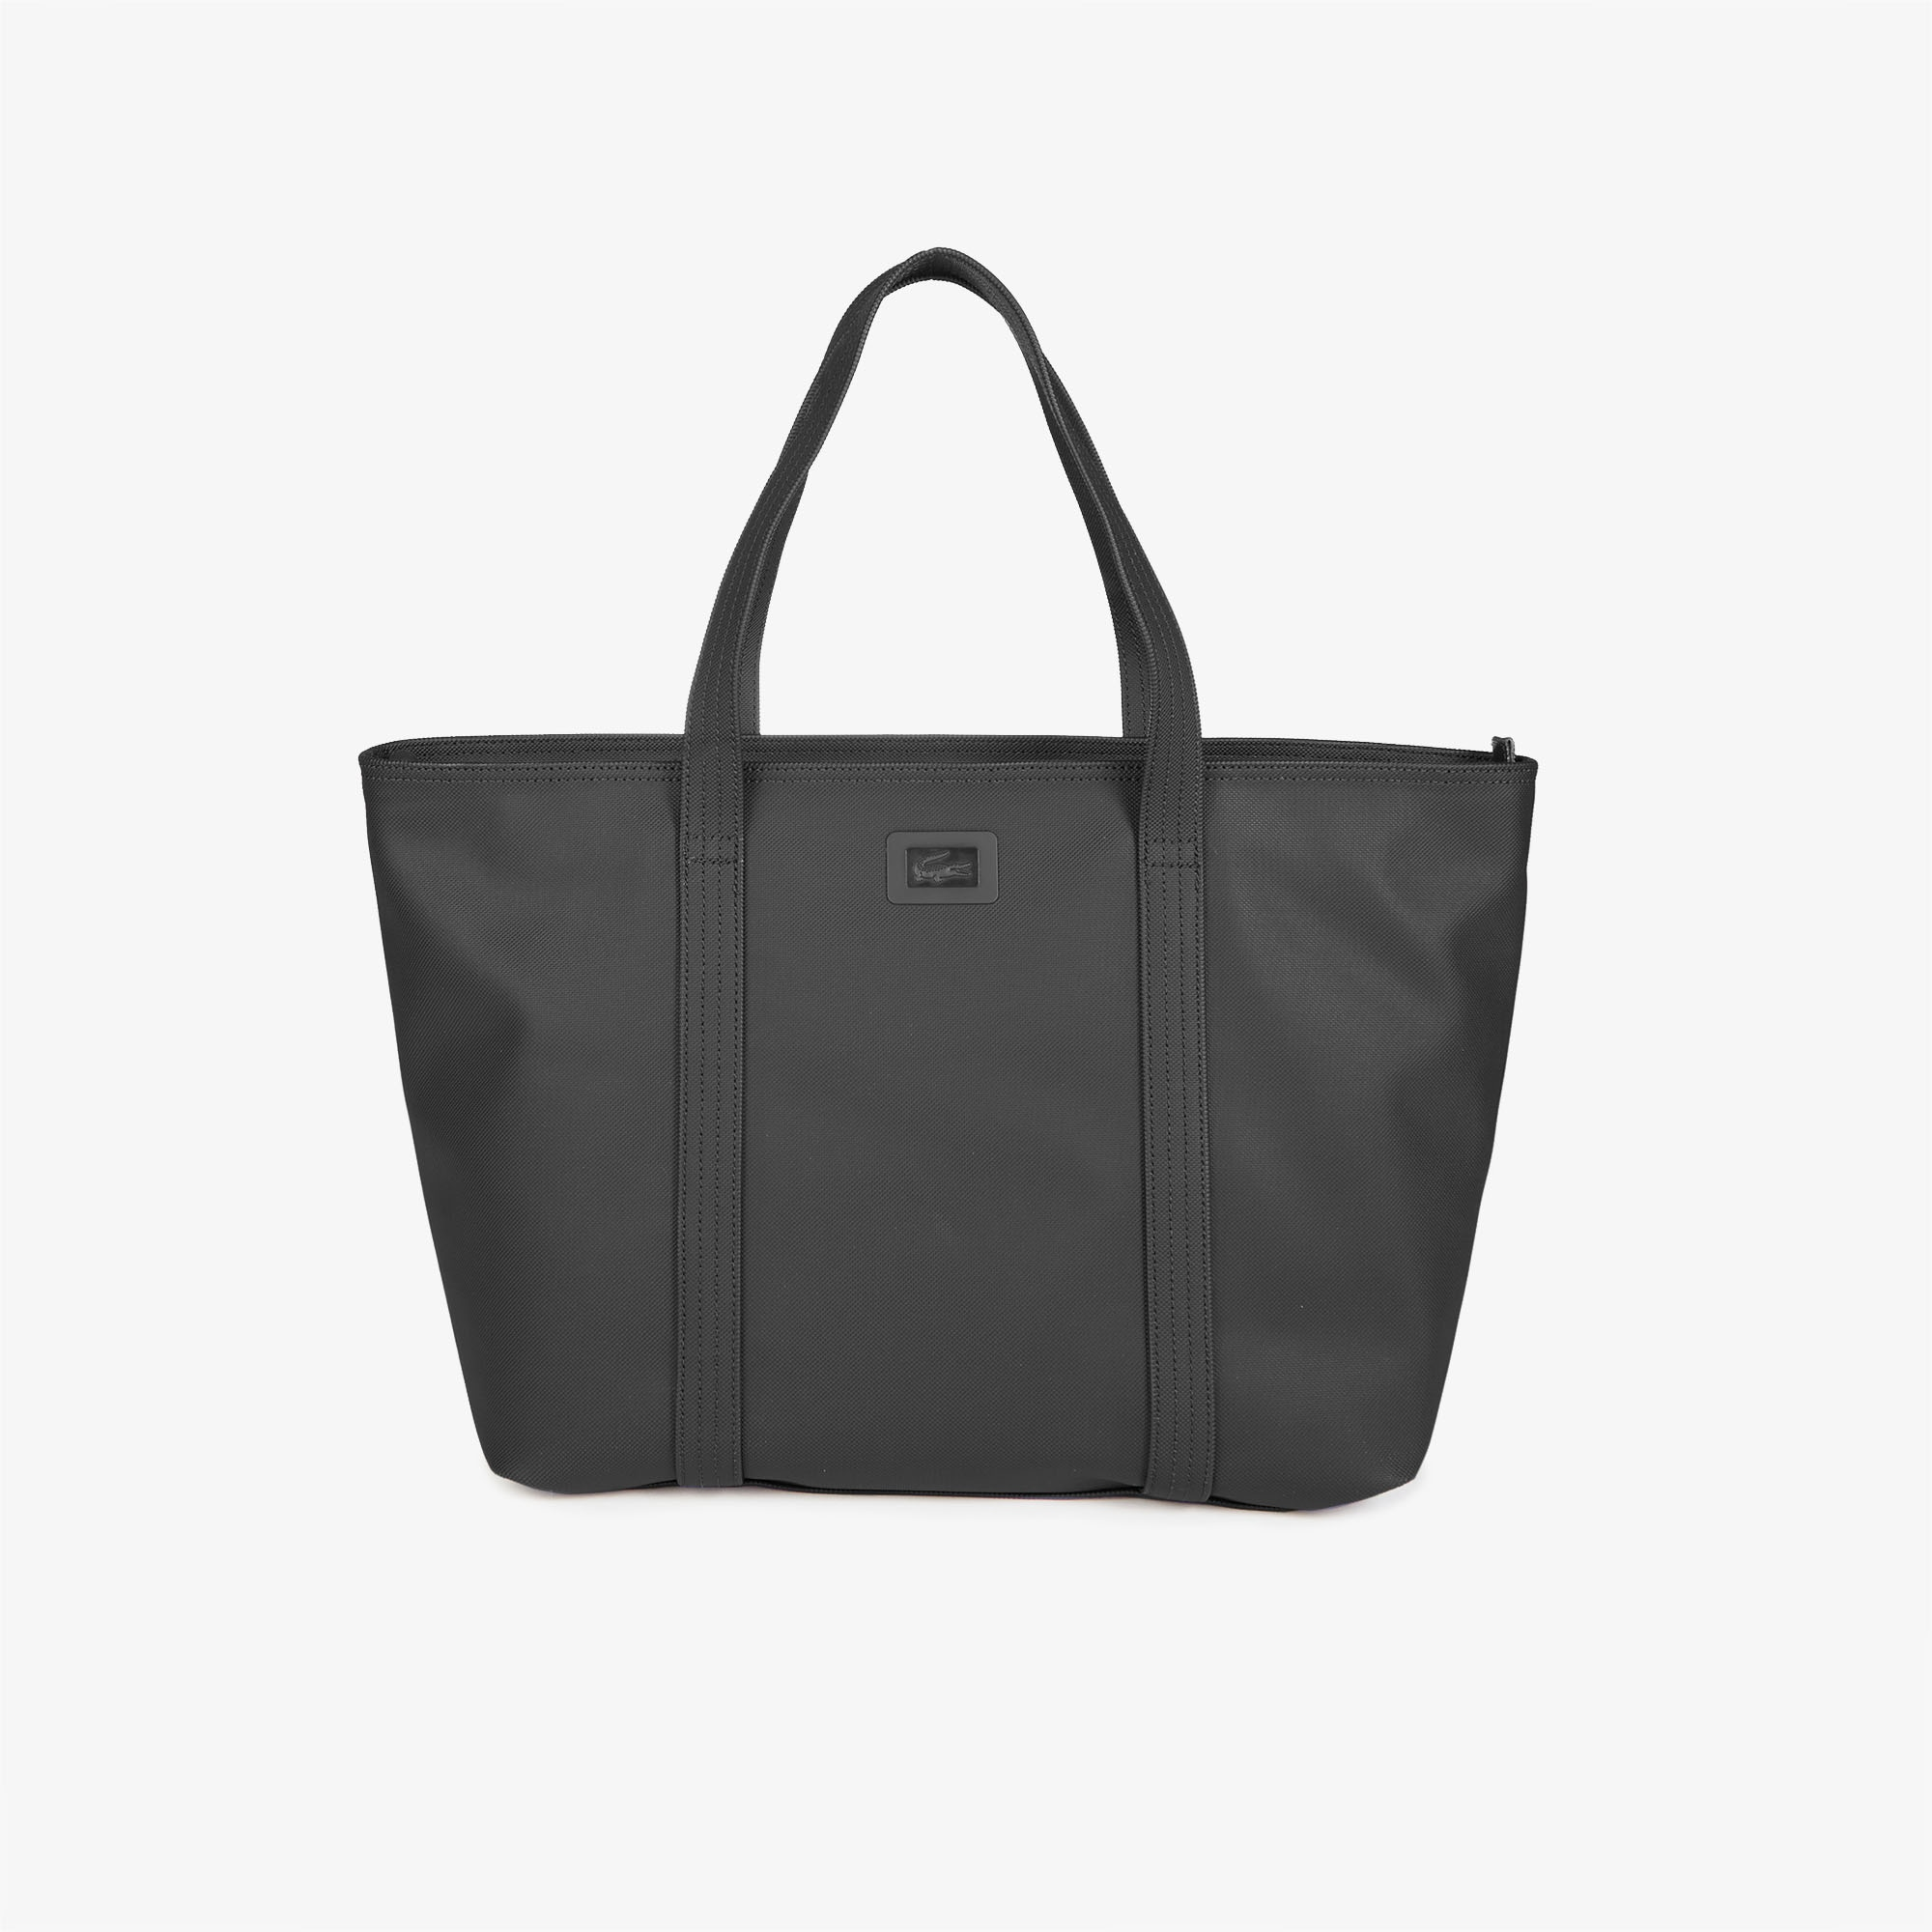 Lacoste Womens Shopping Tote Bag